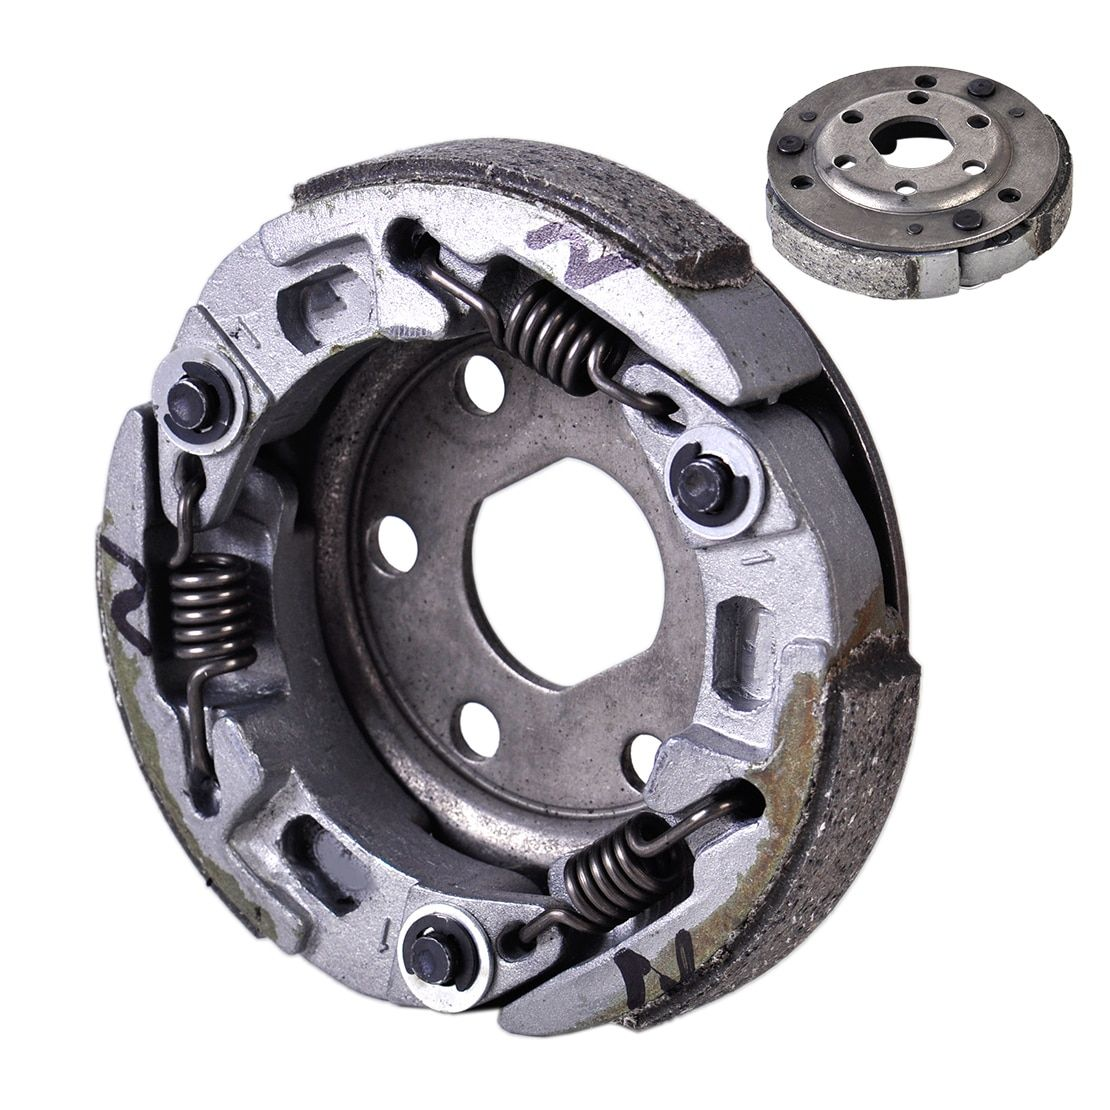 DWCX Motorcycle High Performance Racing Clutch Replacement for GY6 139QMB 50cc Scooter ATV Quad Moped Loncin Yamaha Honda Suzuki